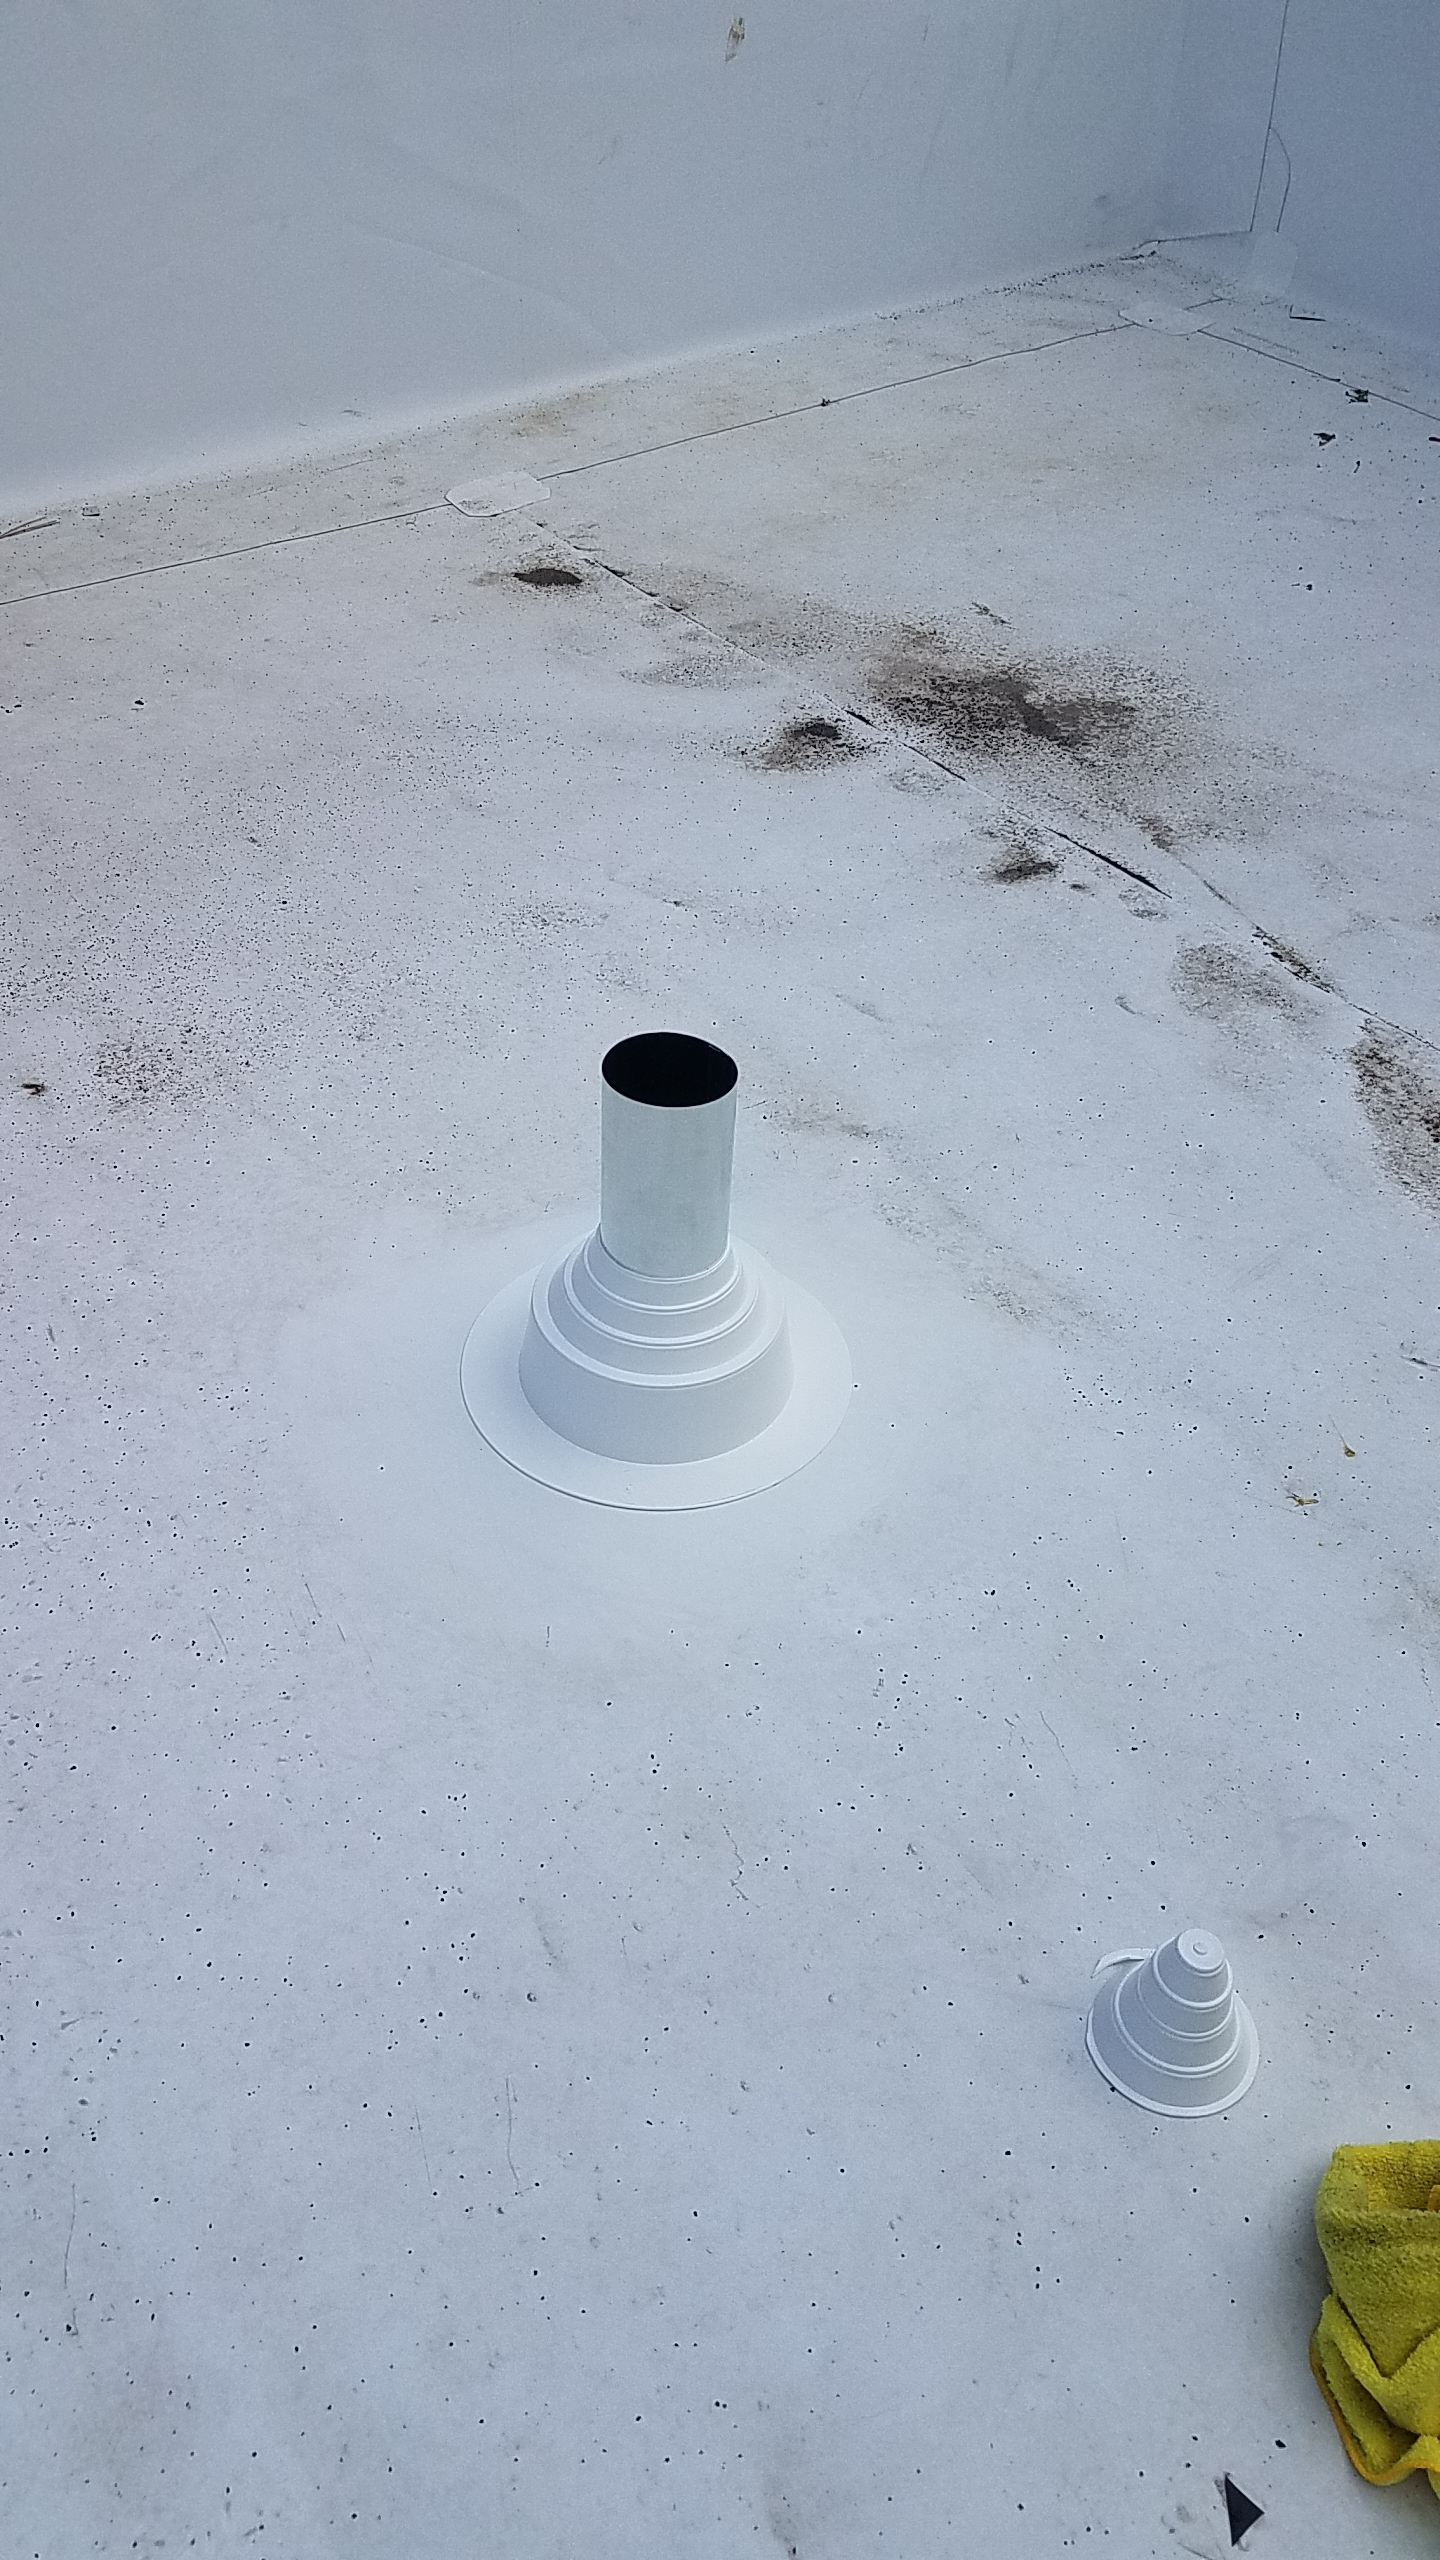 Penetrations were put into the roof for the HVAC lines and venting.